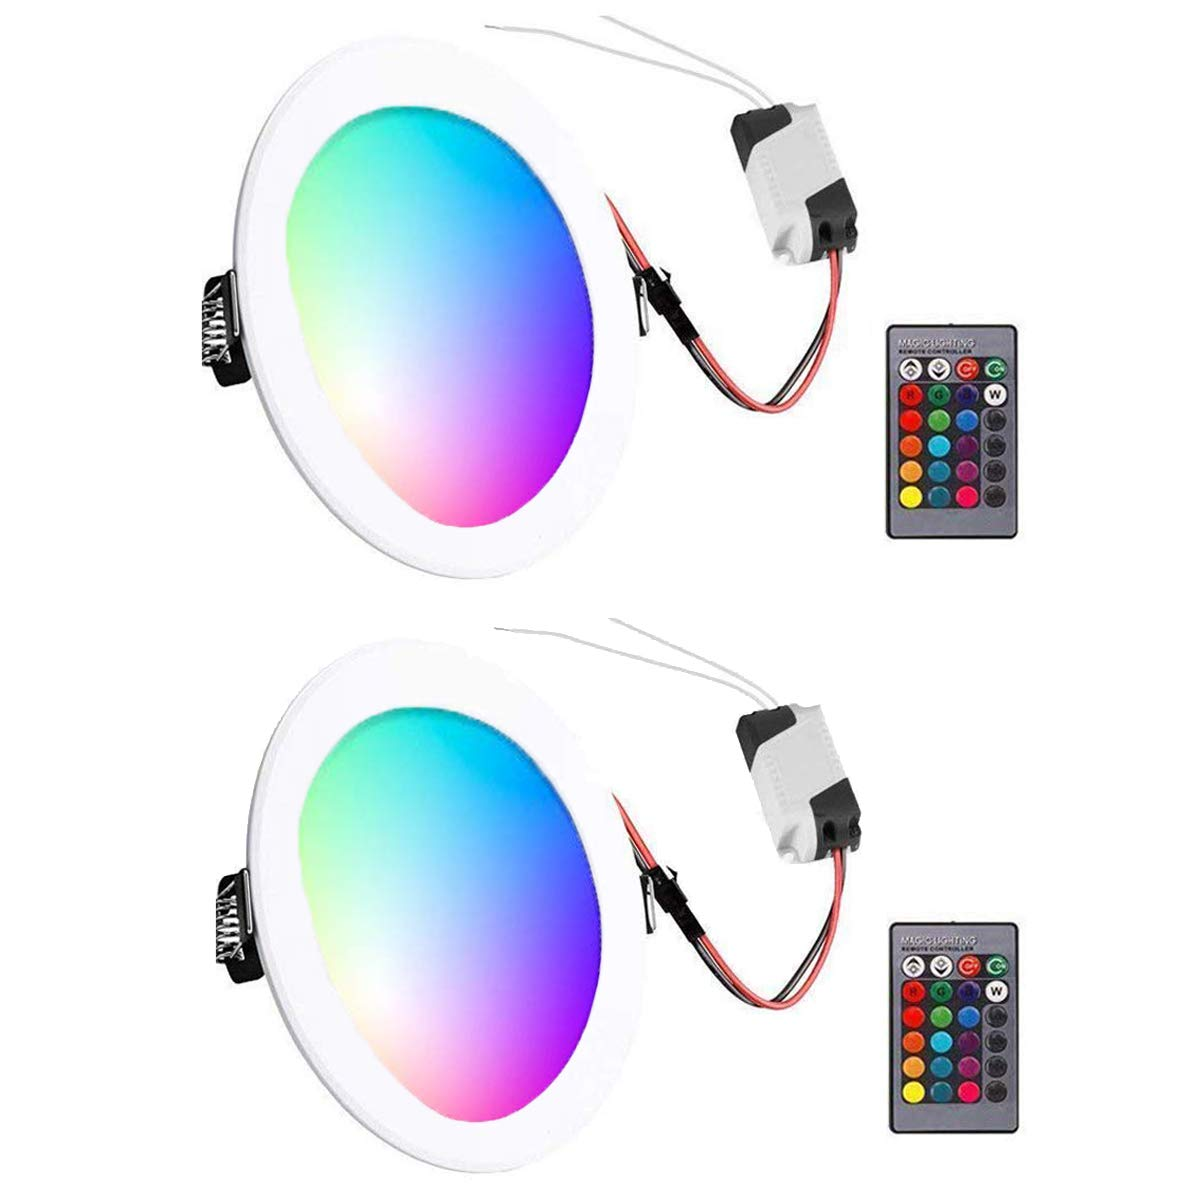 RGB Led Panel Light,Abedoe 5W Ultra Thin 16 Colors Adjustable Ceiling Downlight Fixture Round Concealed Mounted with Remote Control and Driver,AC 85-265V (2 Pack)